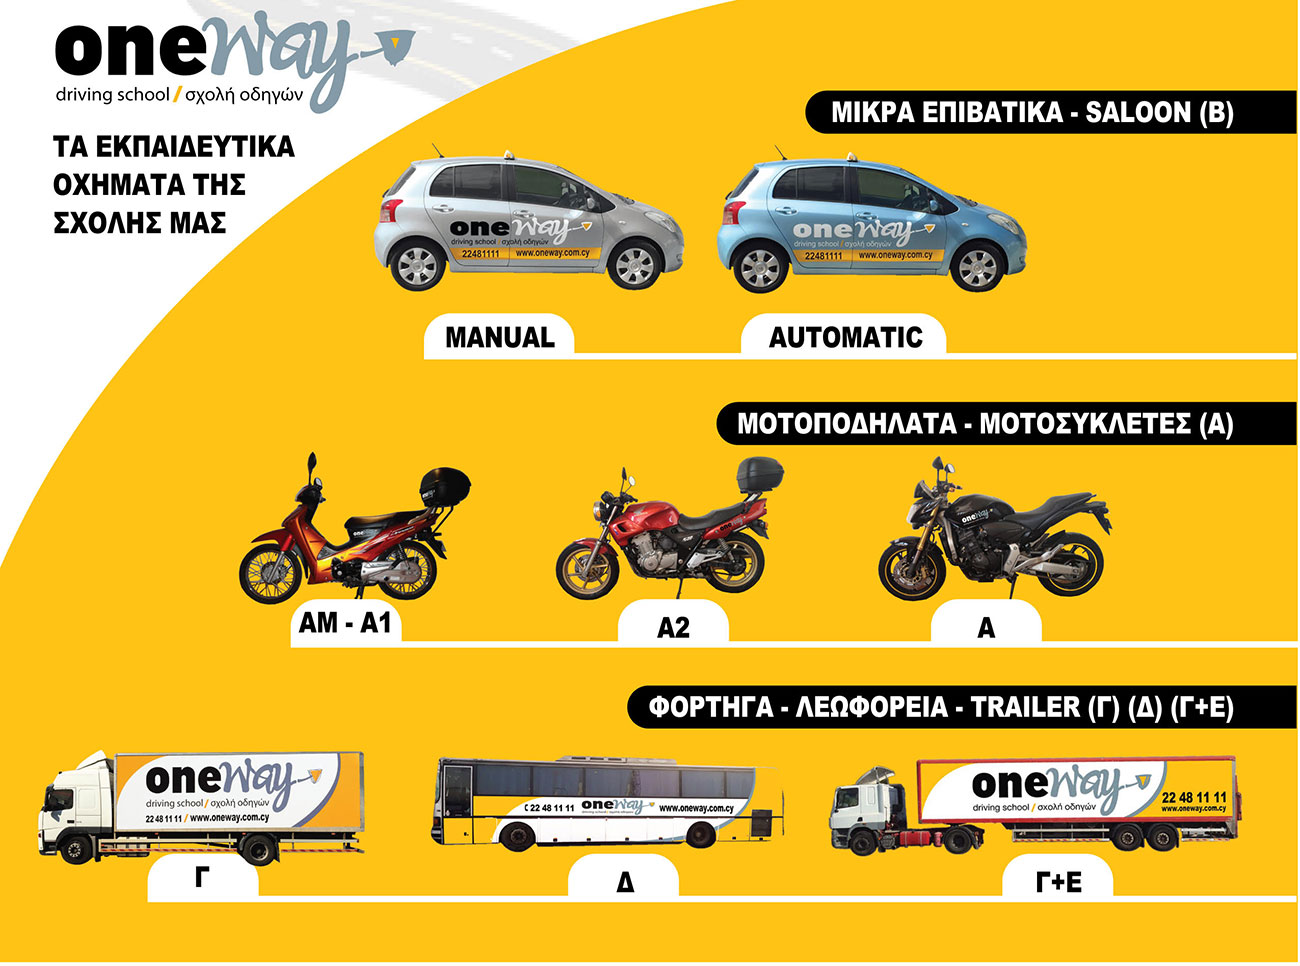 Learner motor driver licence oneway driving school nicosia for Motor city driving school